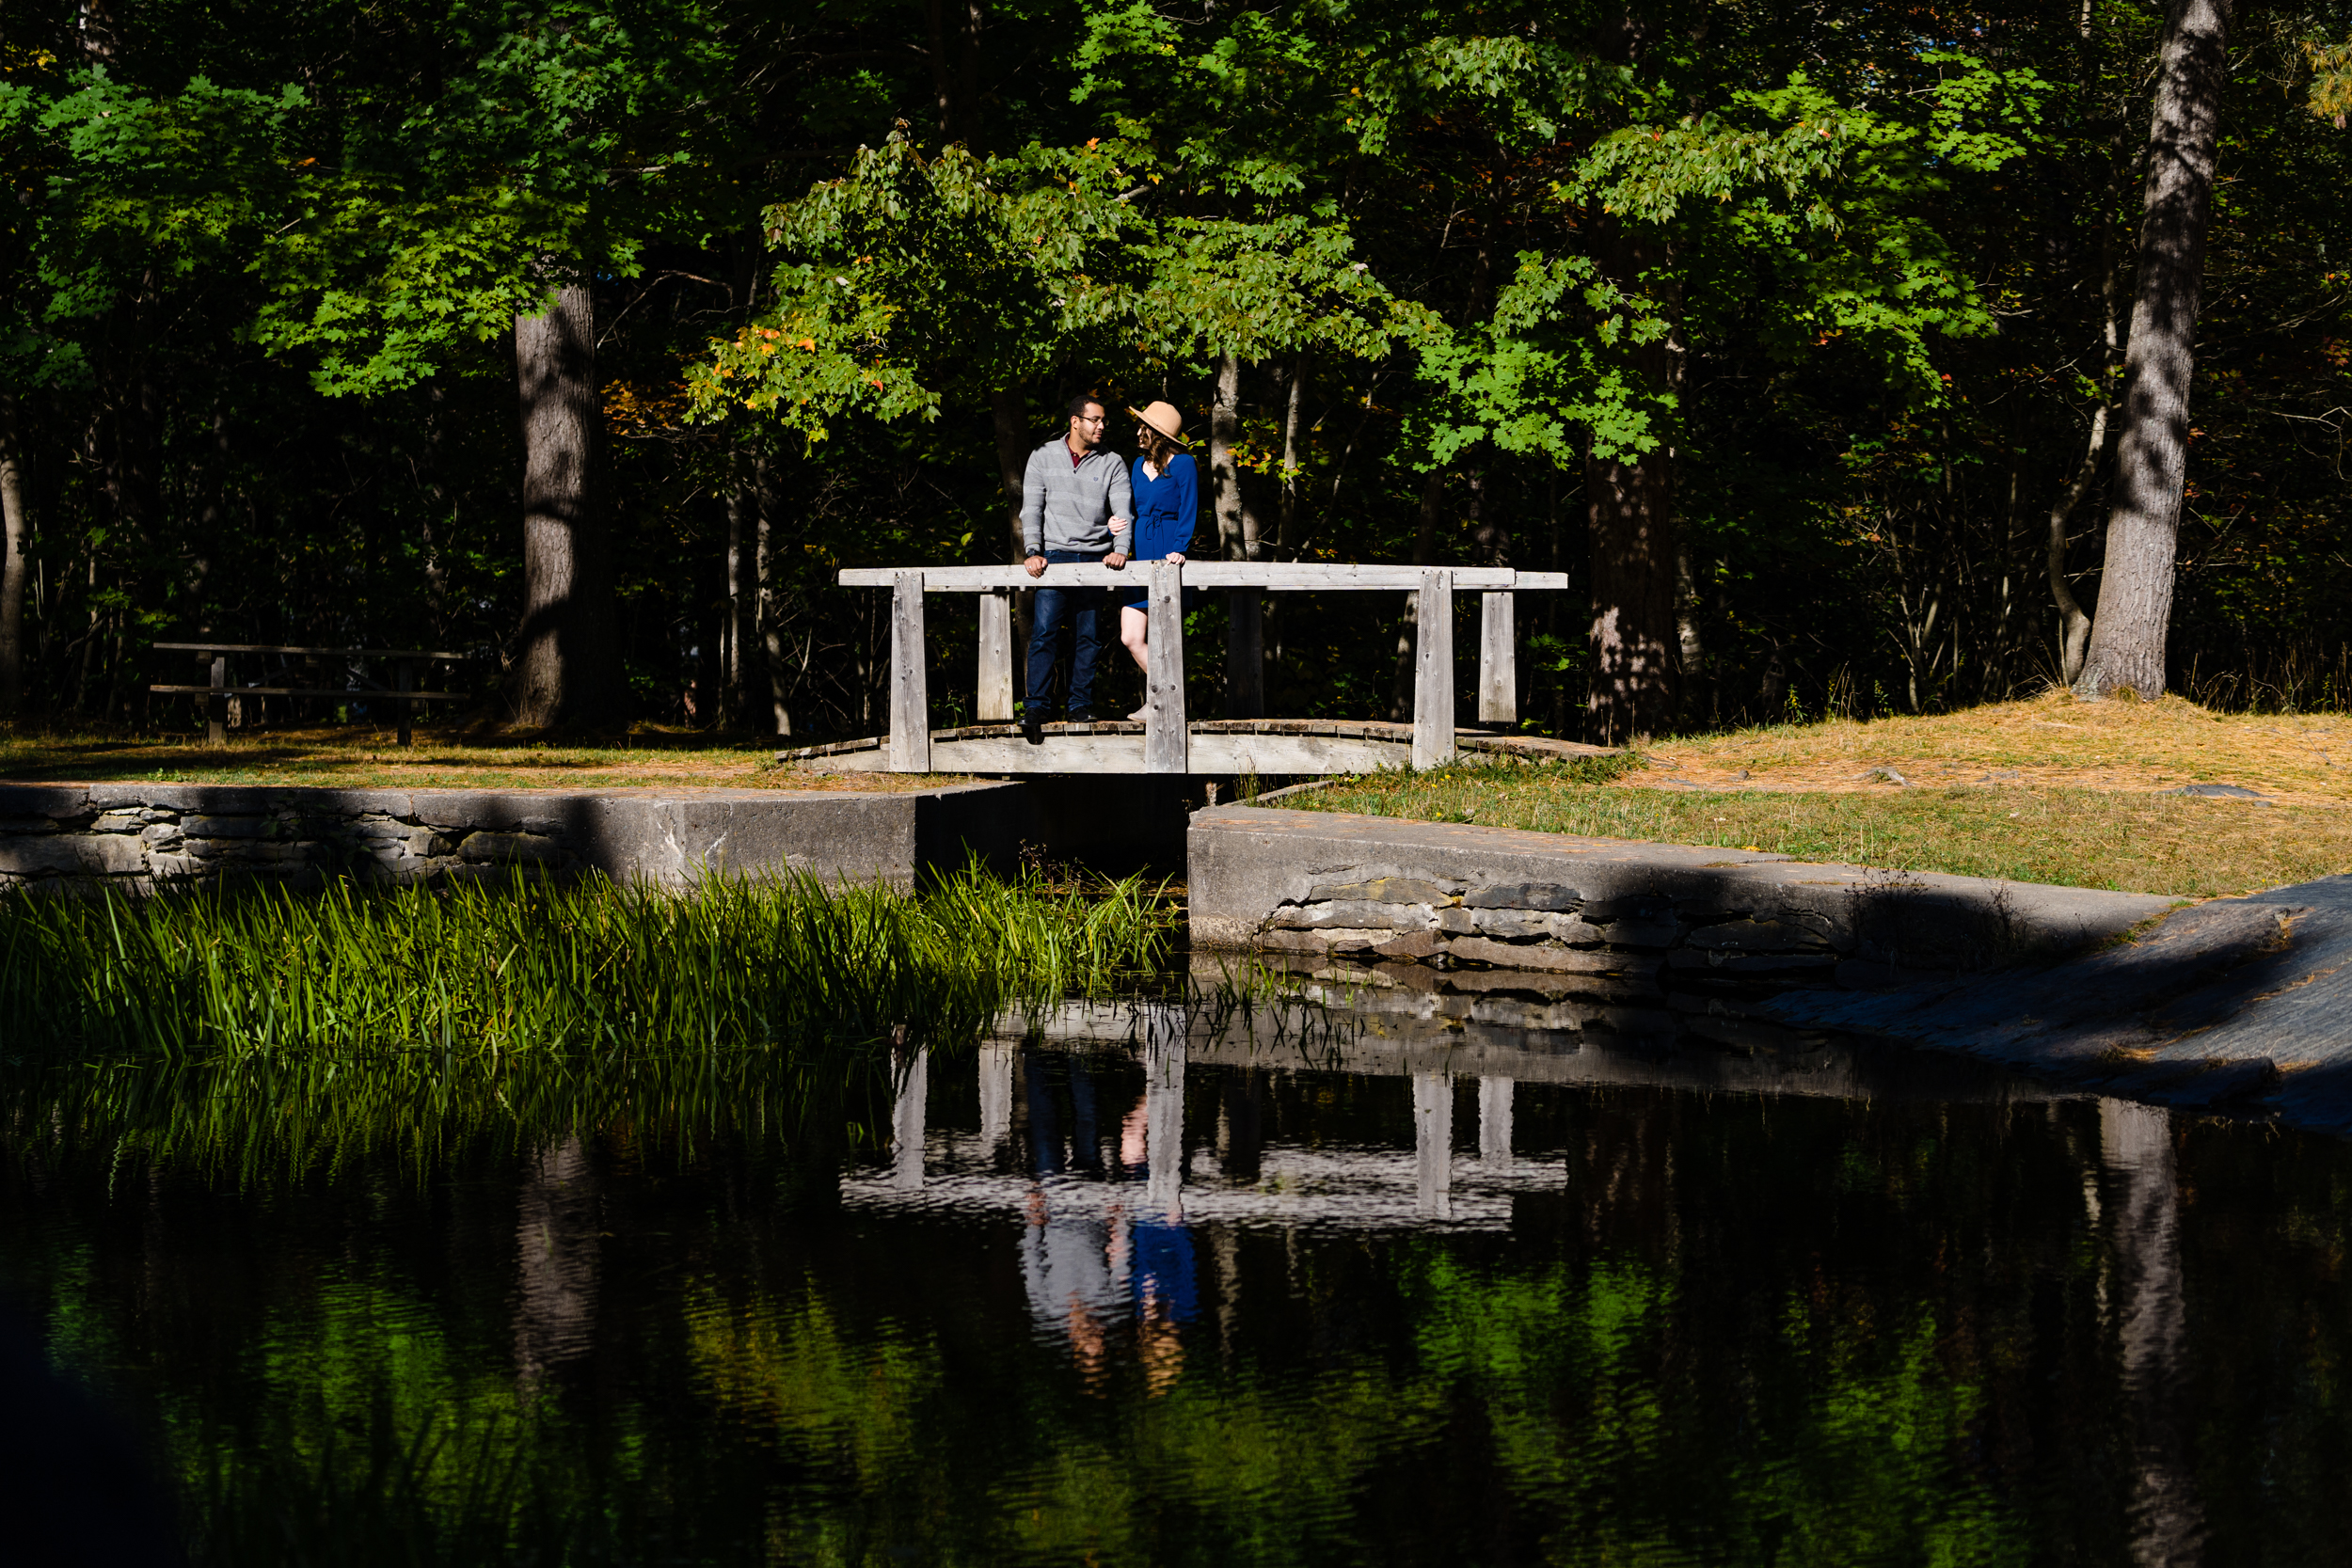 Wedding-halifax-engagement-nova-scotia-ottawa-ontario-pointpleasantpark-Fall-Autumn (2 of 53).jpg